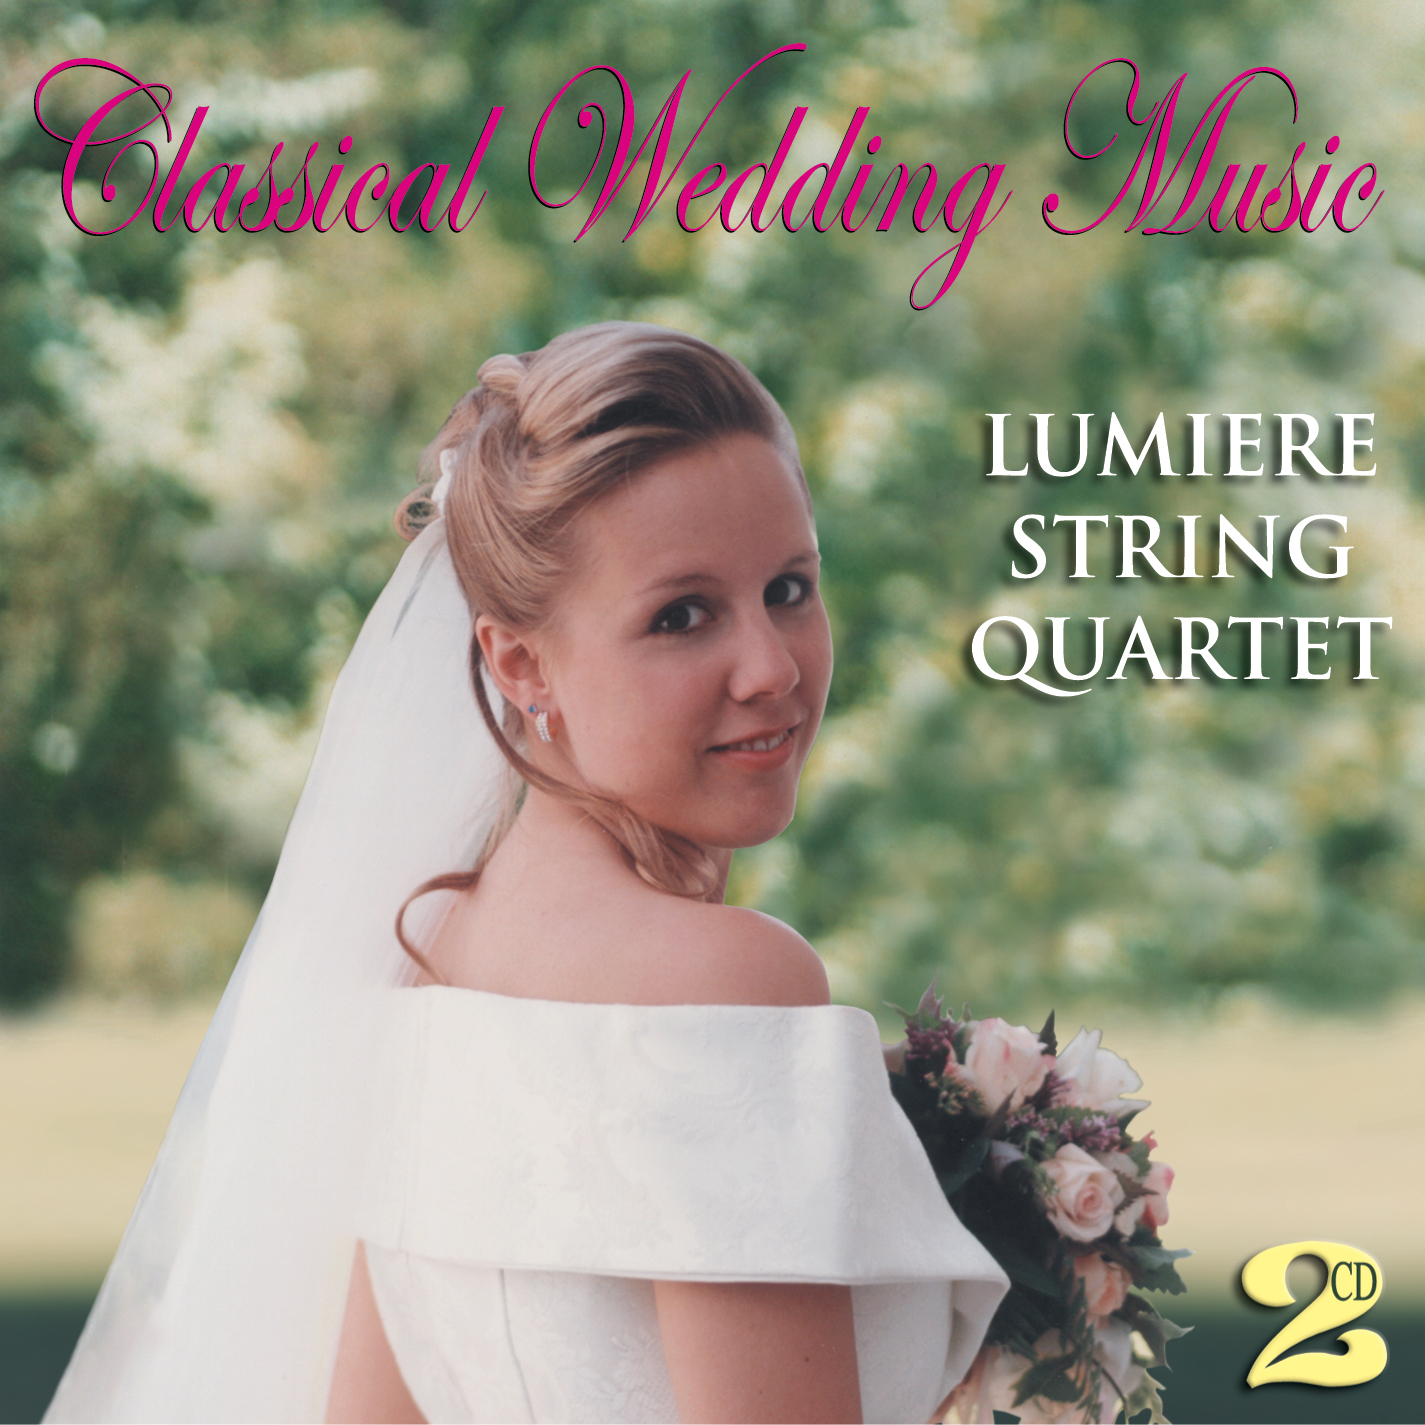 Classical Wedding Music-Cover-Square.jpg